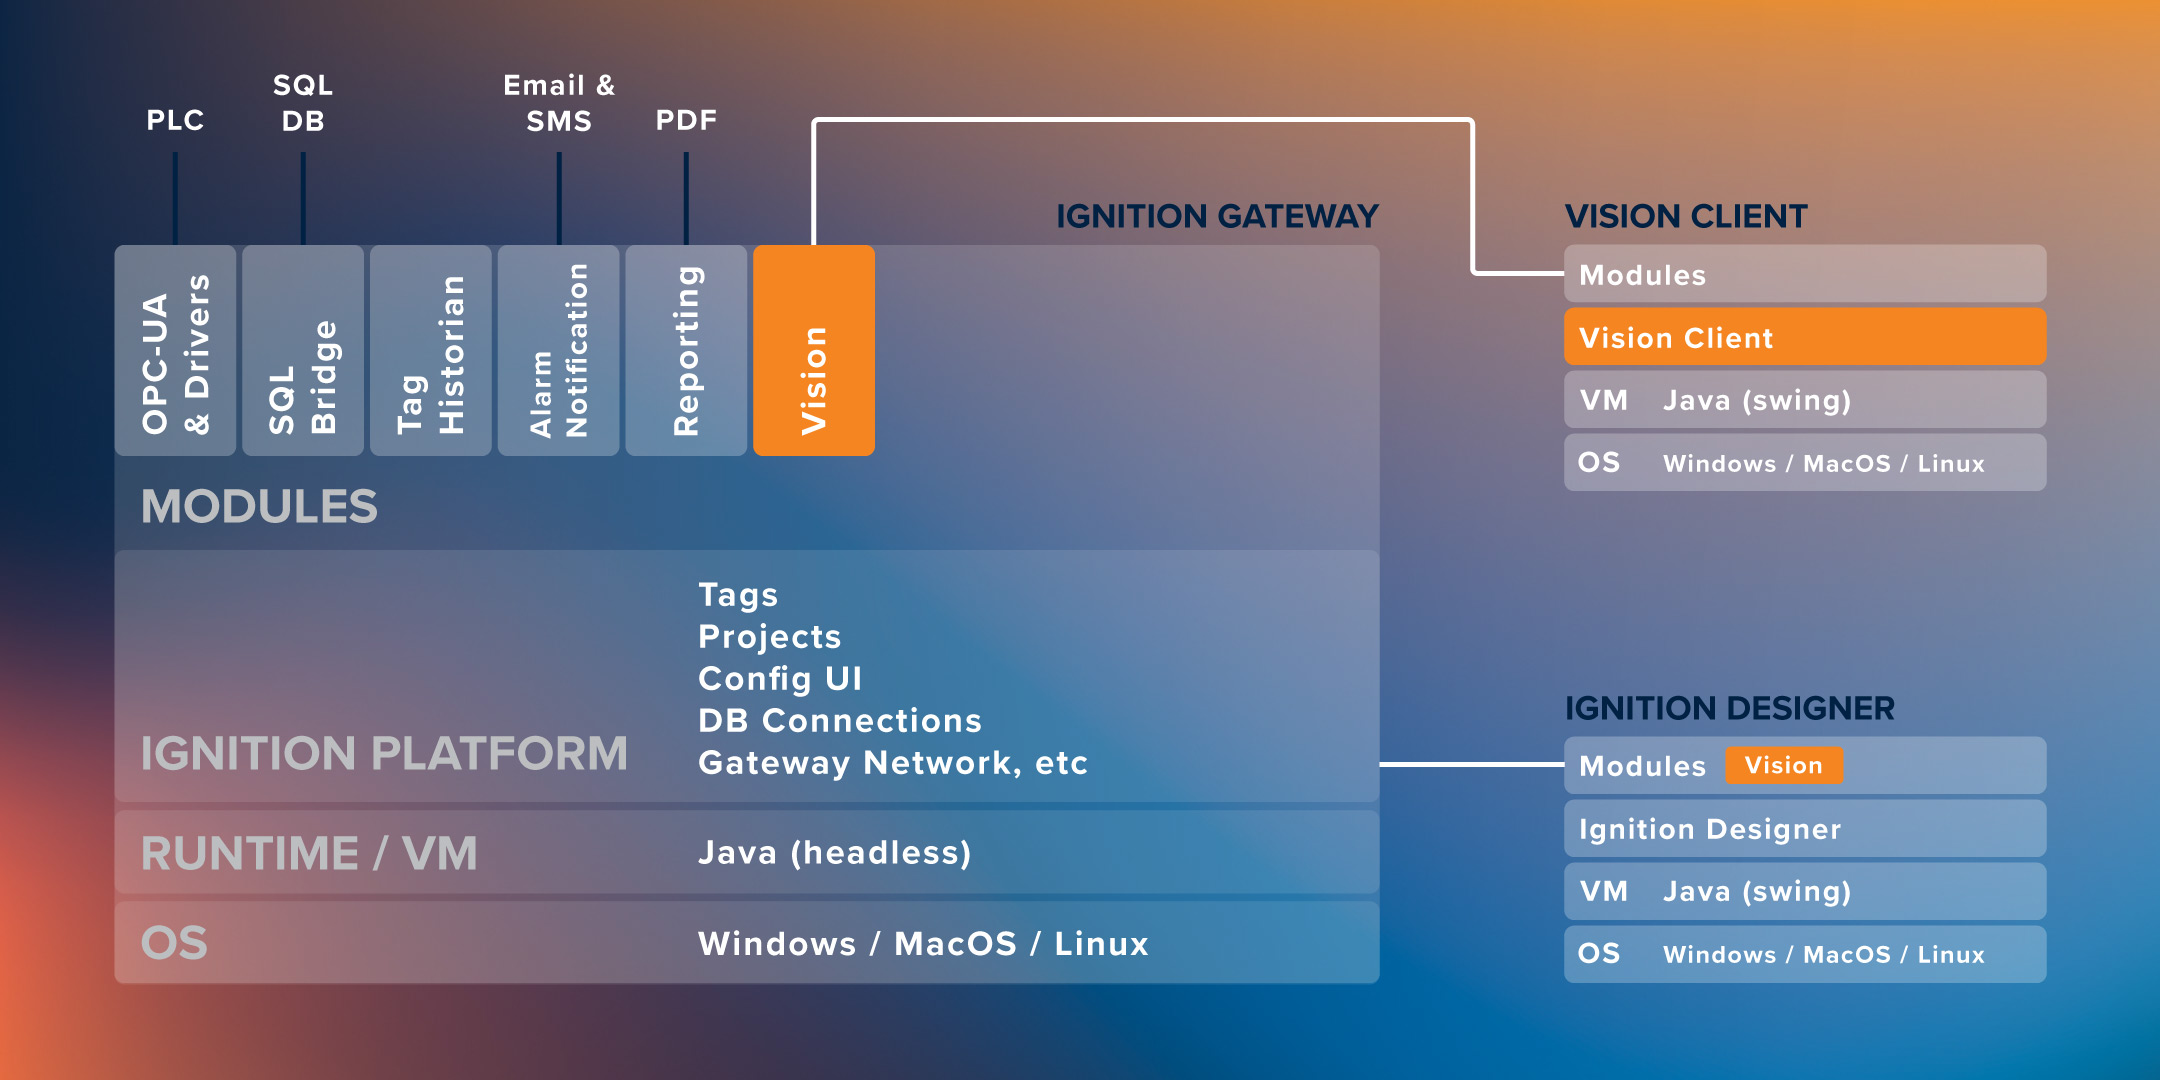 Vision Client Tech Stack